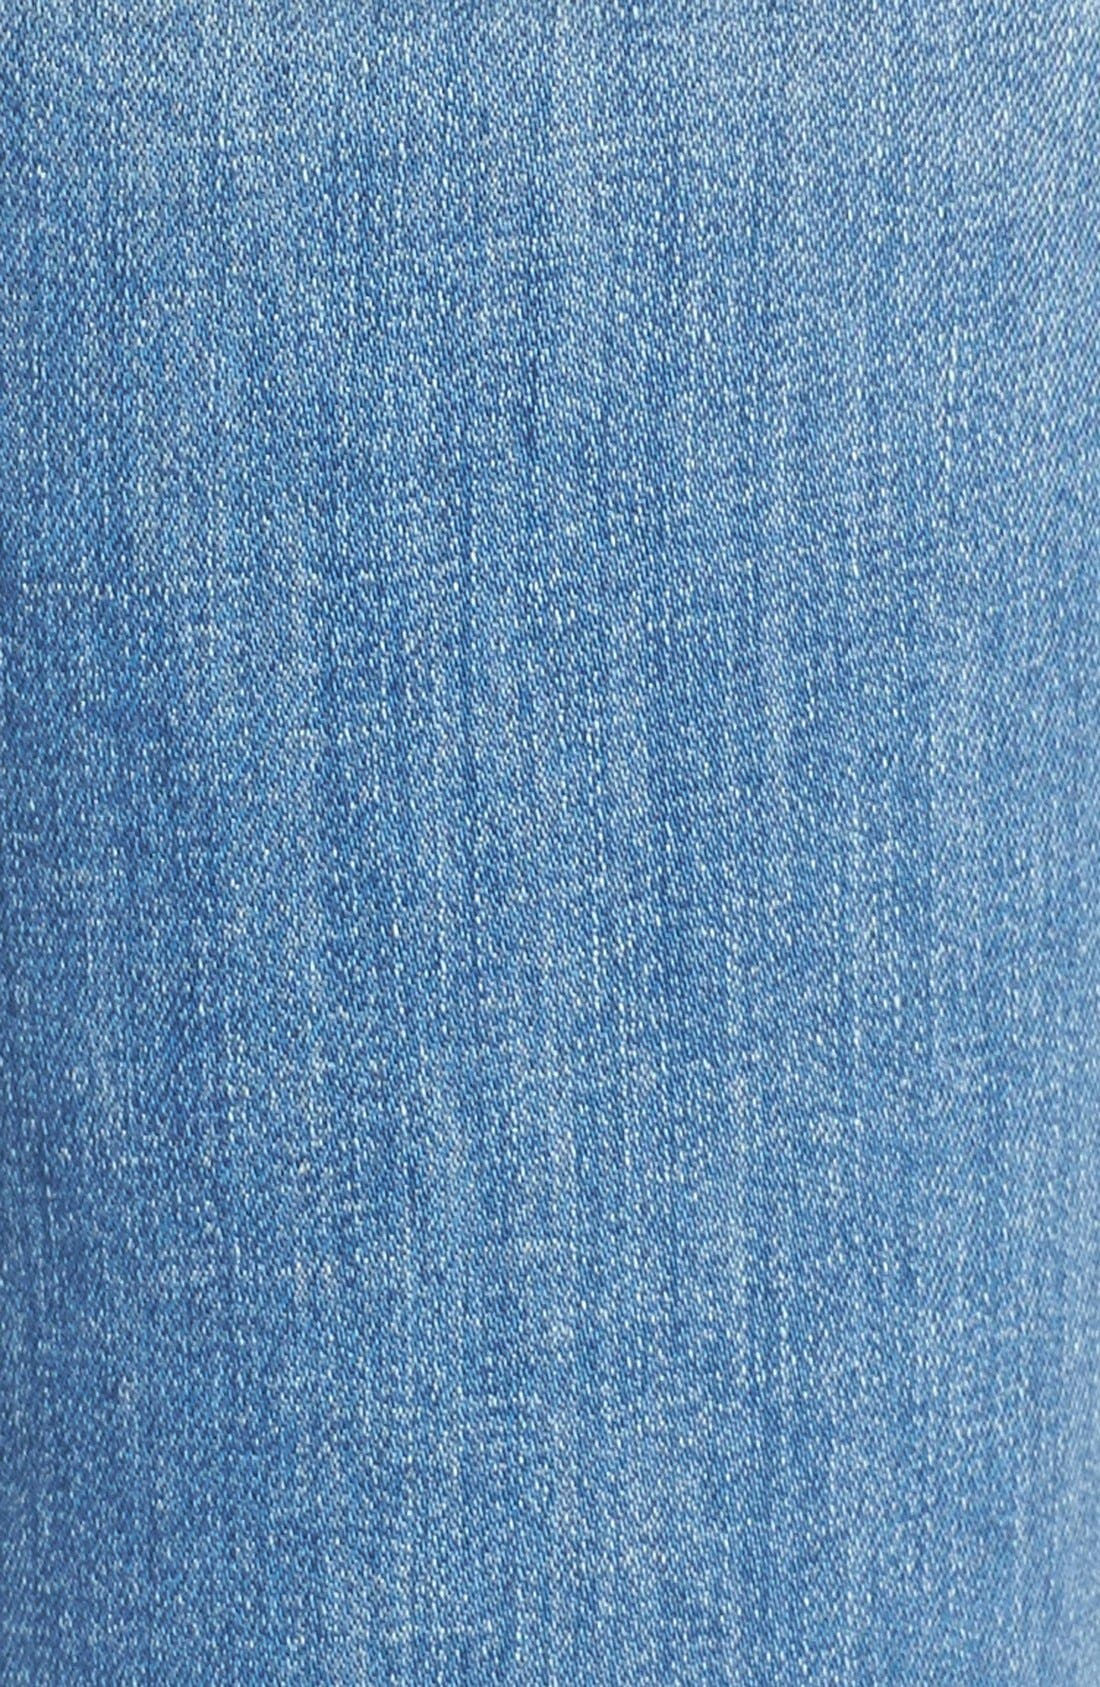 'The Insider' Crop Step Fray Jeans,                             Alternate thumbnail 5, color,                             SHAKE WELL